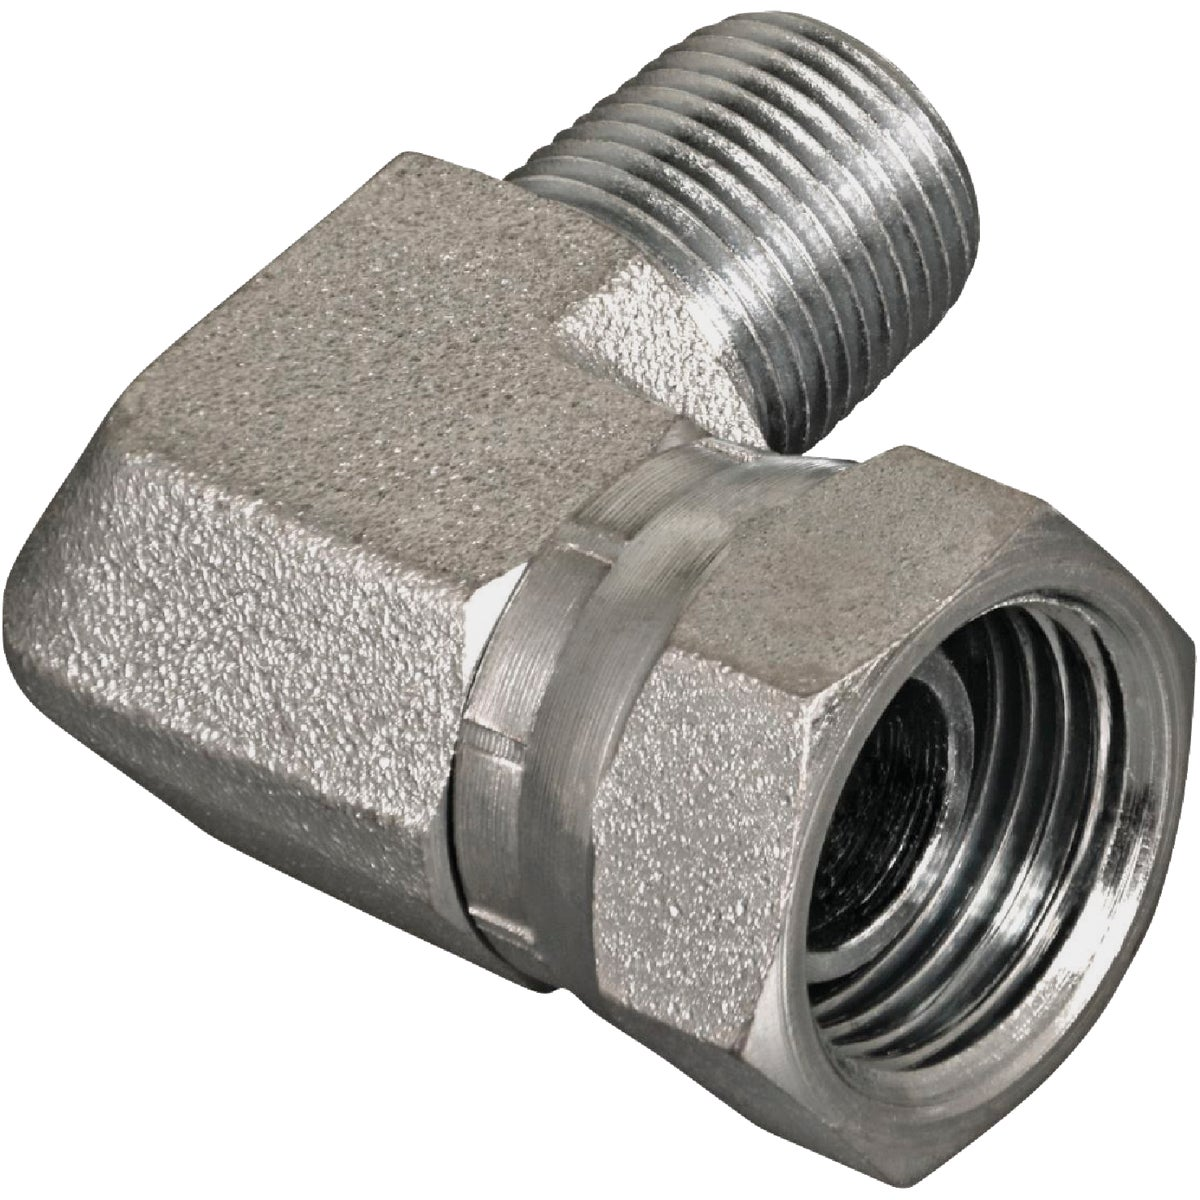 1/2MX1/2F SW HYD ADAPTER - 39005175 by Apache Hose Belting